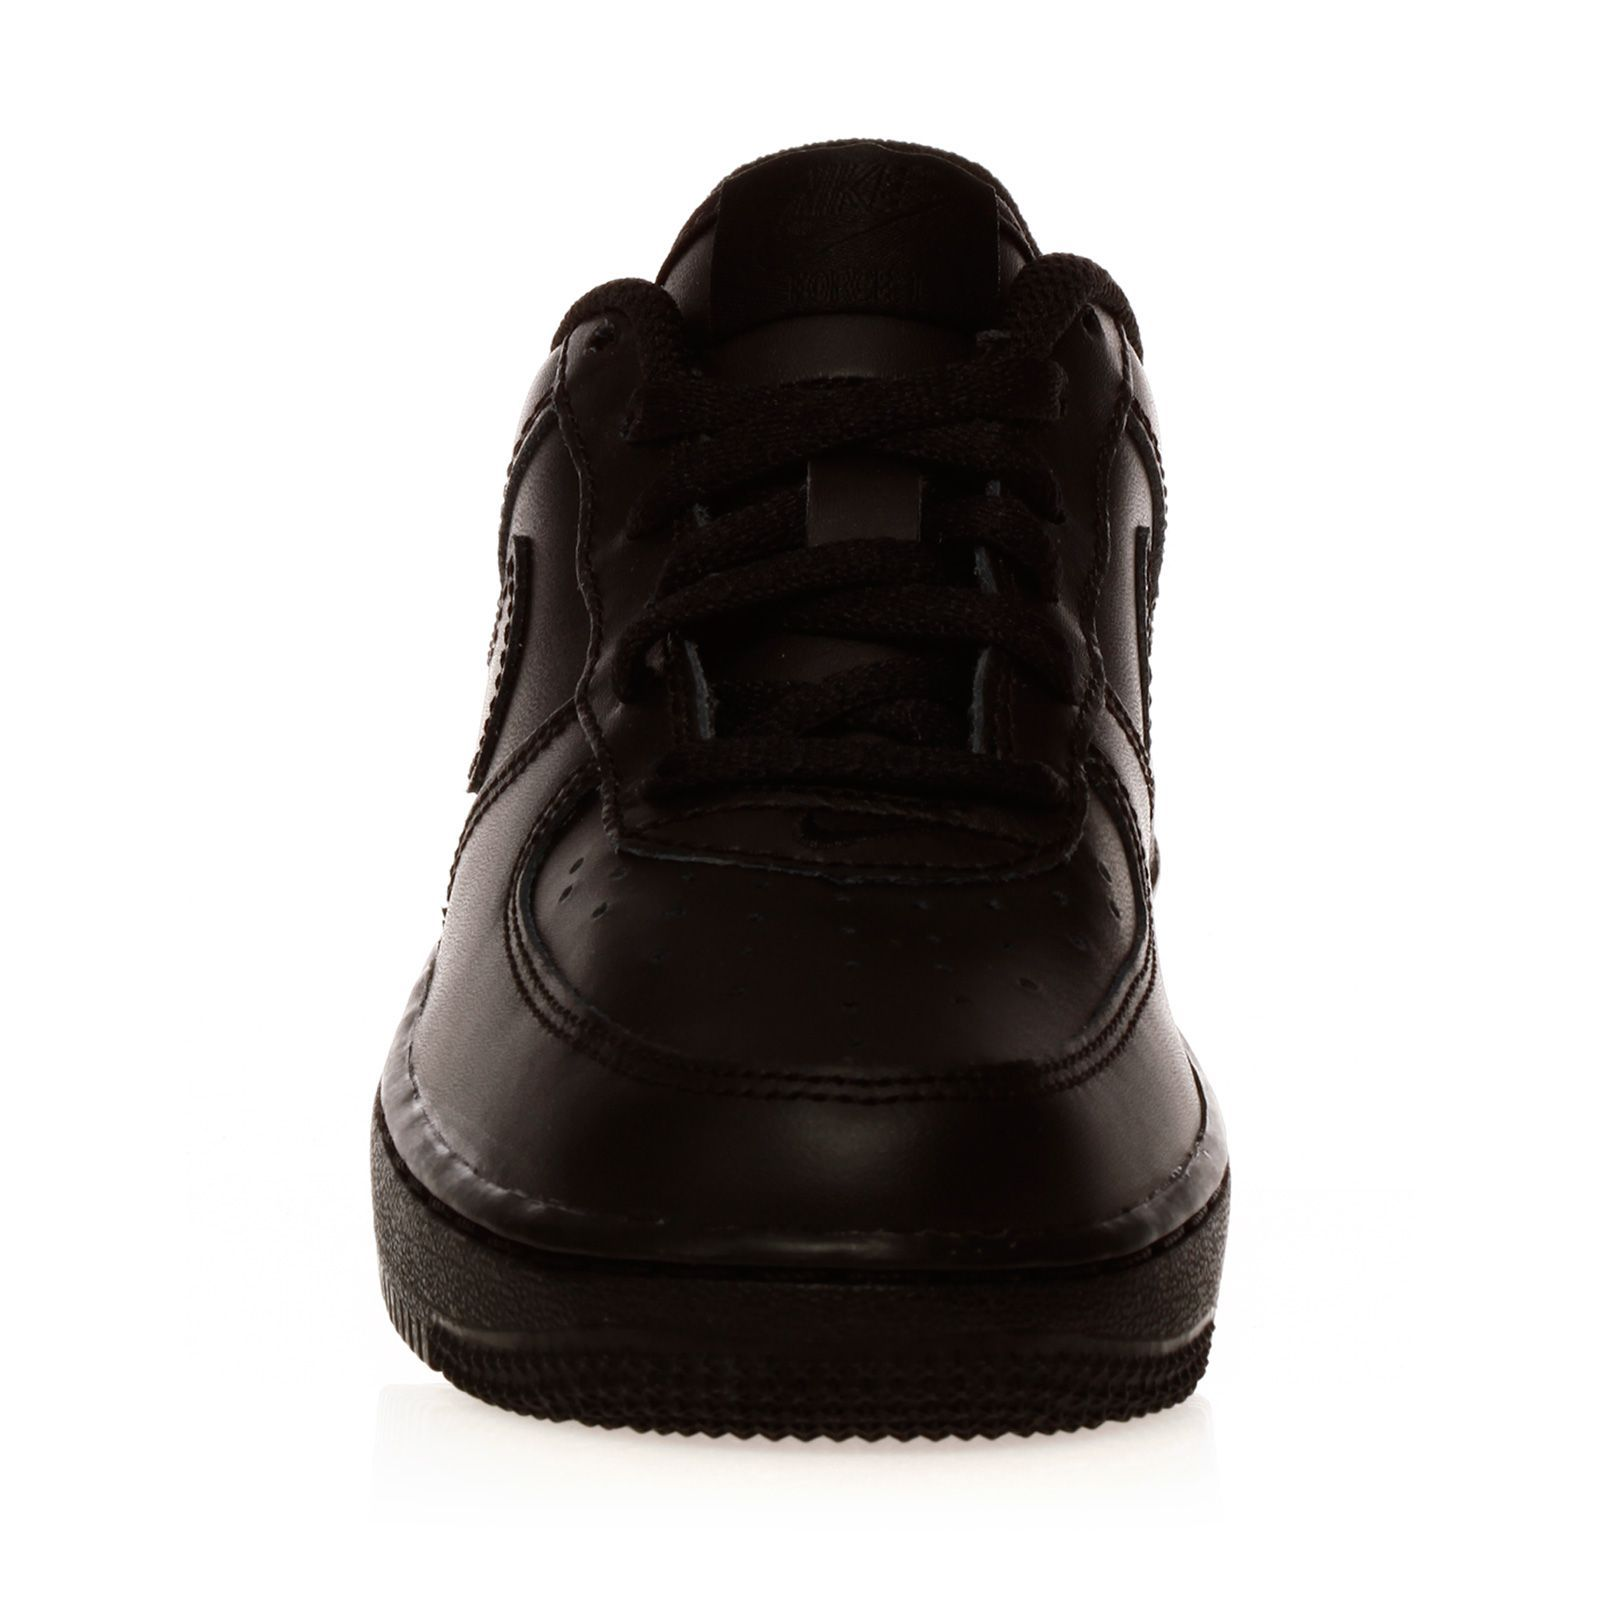 hot sale online 71abb bee09 nike air force 1 mid noir,nike air force 1 mid noir